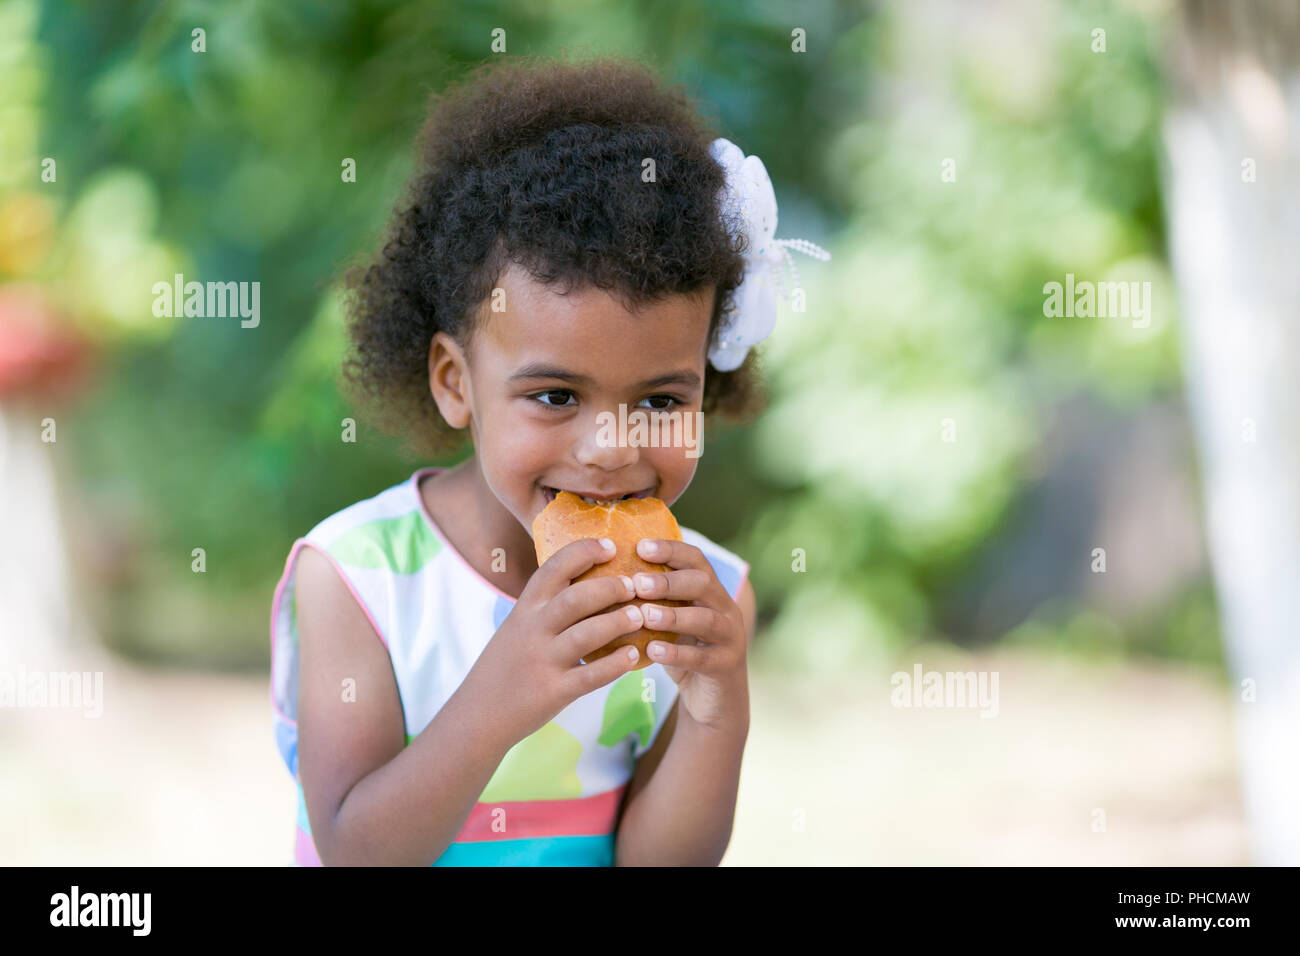 A beautiful 4 year old african american girl holding a two handed patty a